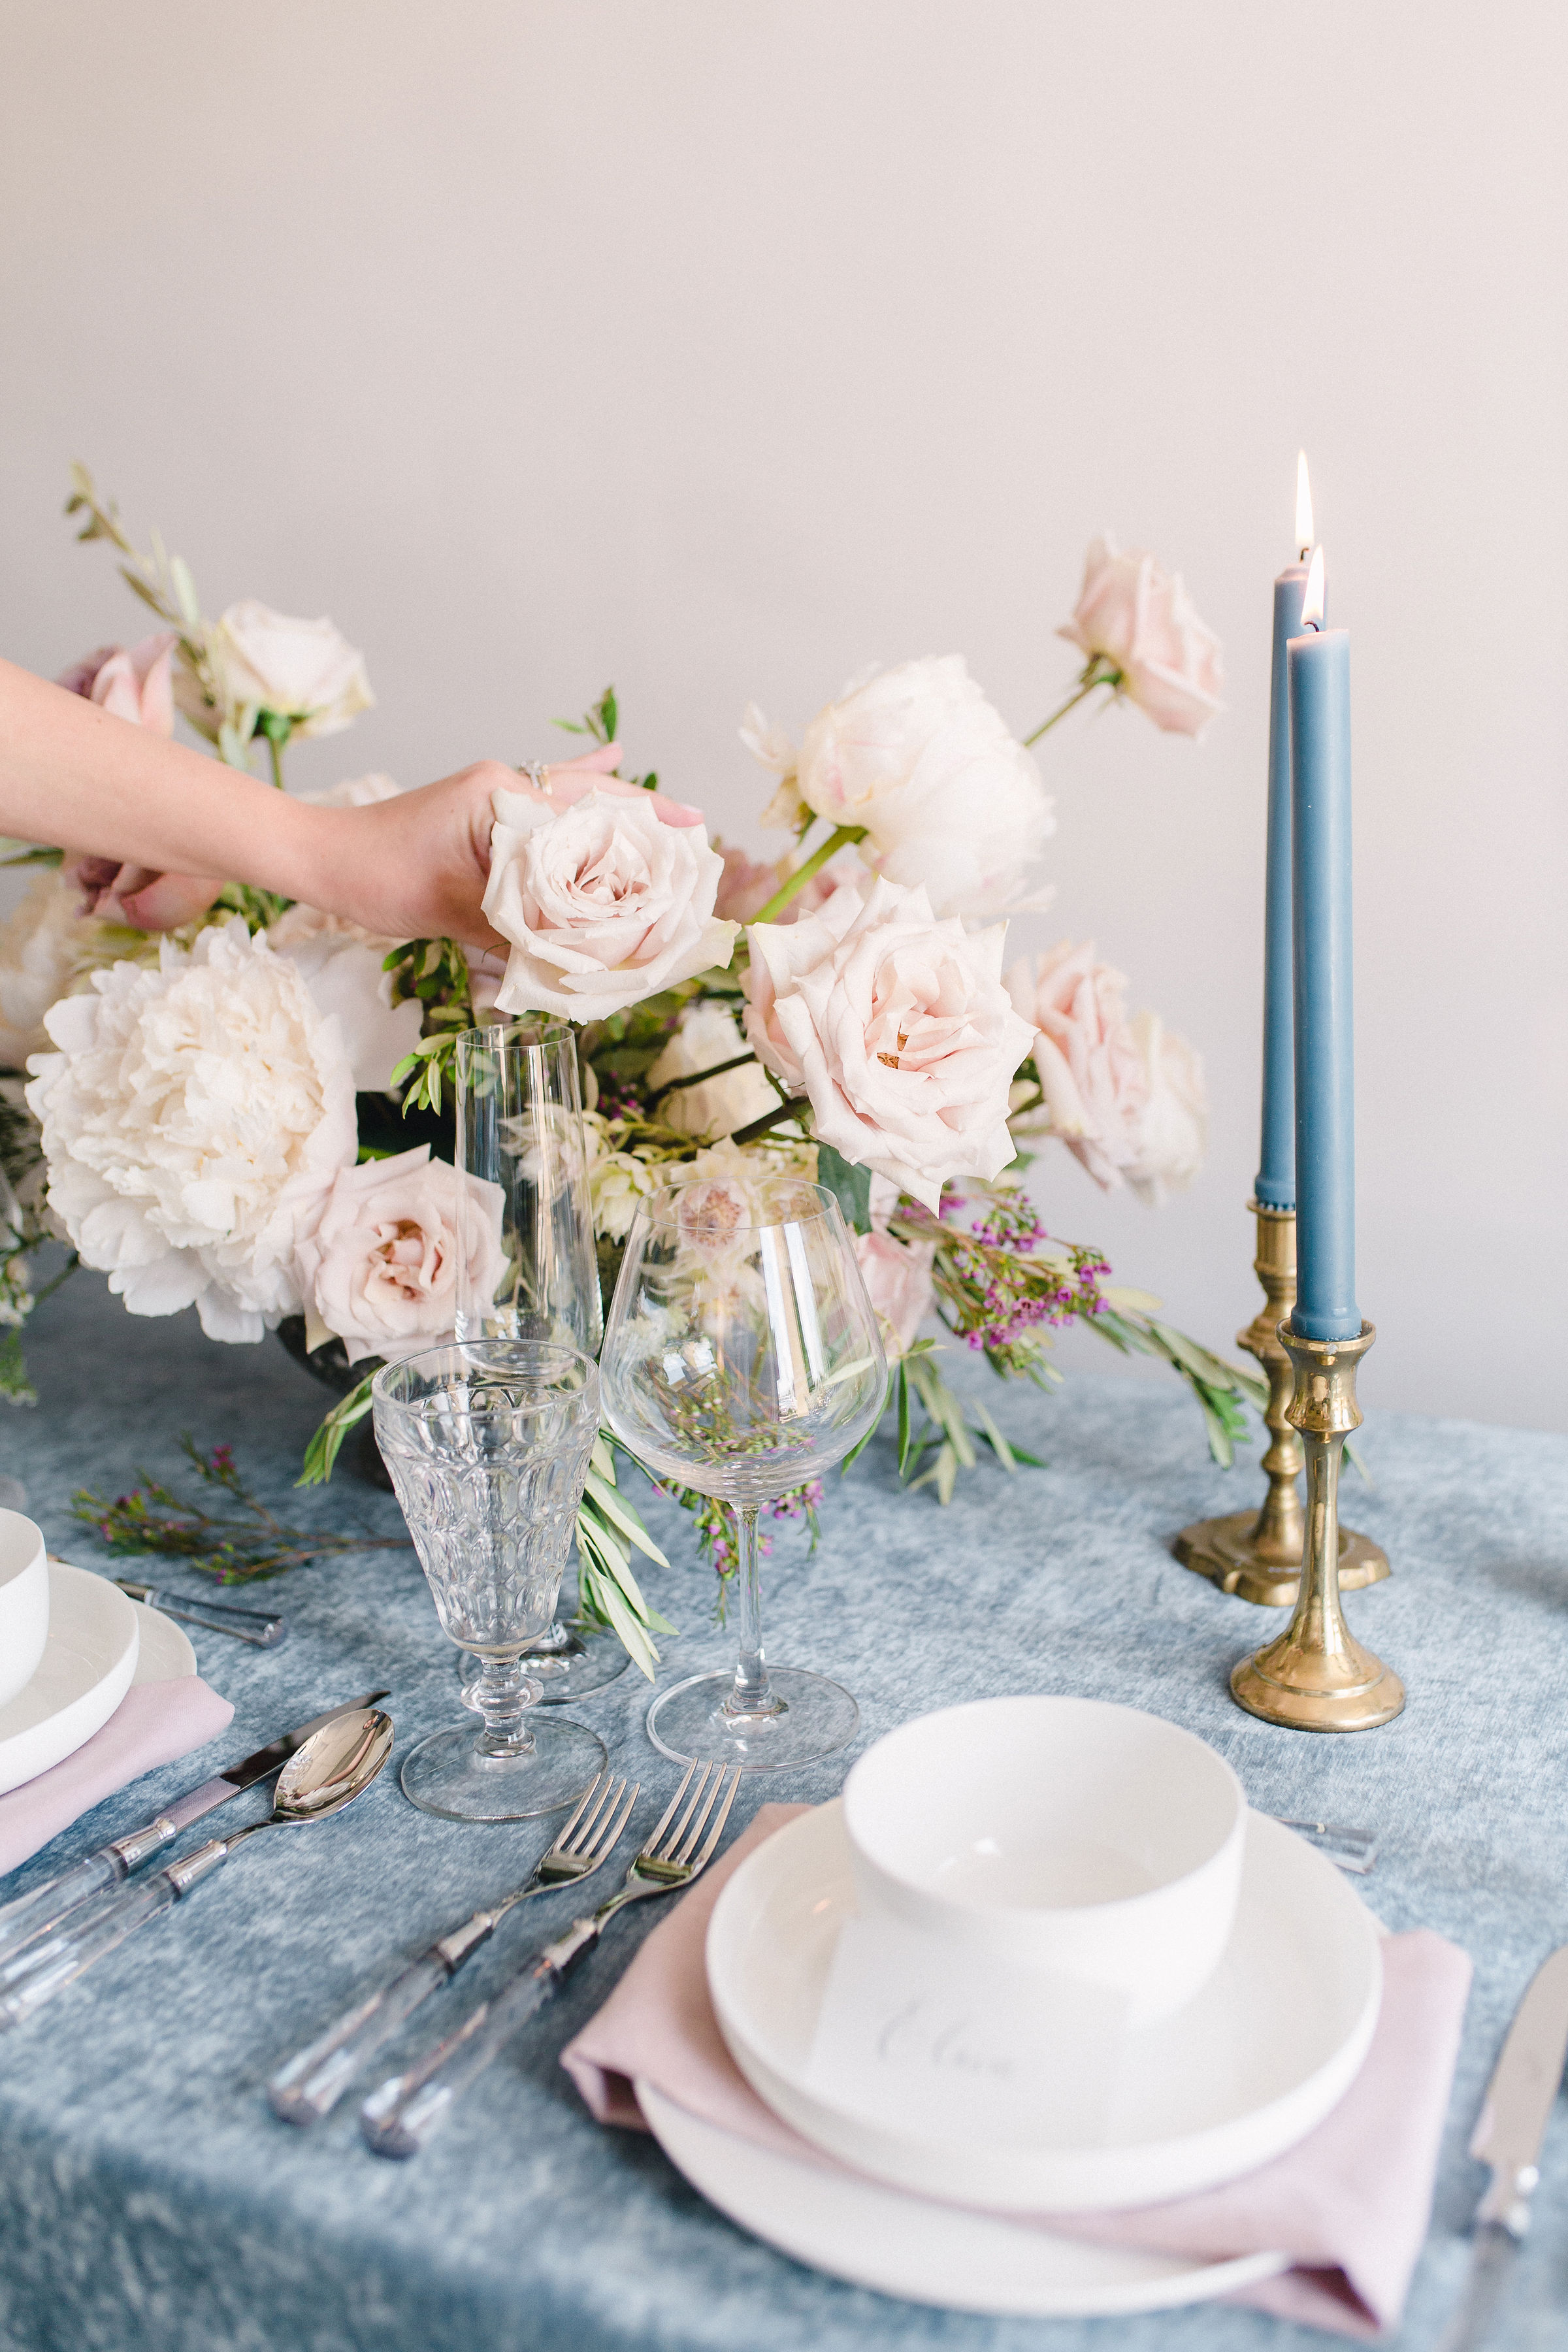 Simple and clean tableware and cutlery. Tablescape inspiration. Floral & Event Design by Maxit Flower Design, Photography:  Alicia Yarrish . Houston, TX.